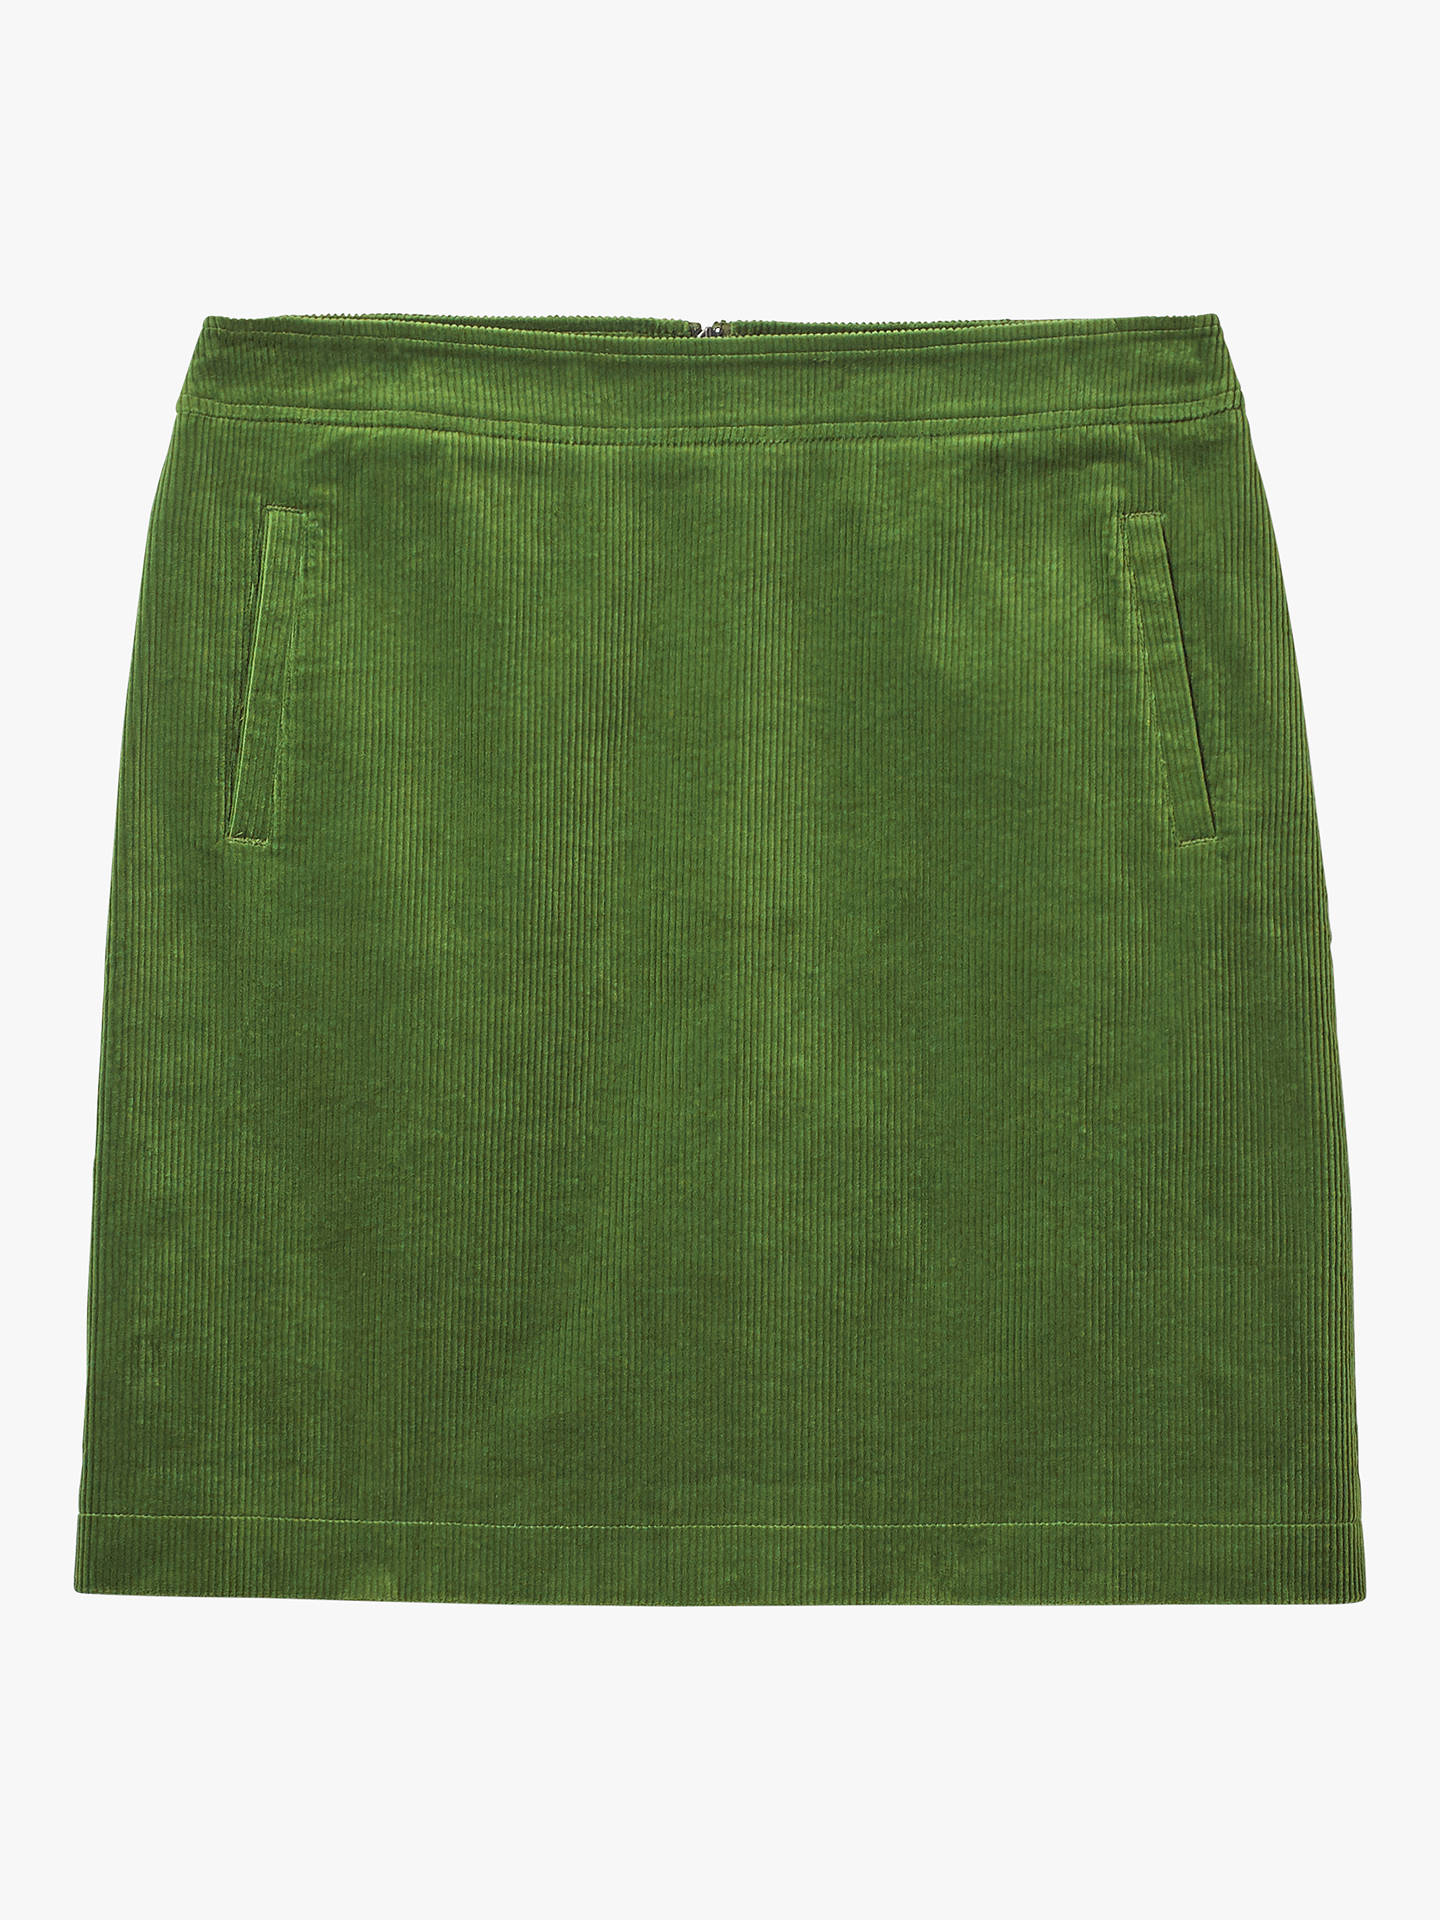 1ccc138268 ... Buy White Stuff Iris Cord A-Line Skirt, Green, 16 Online at johnlewis  ...